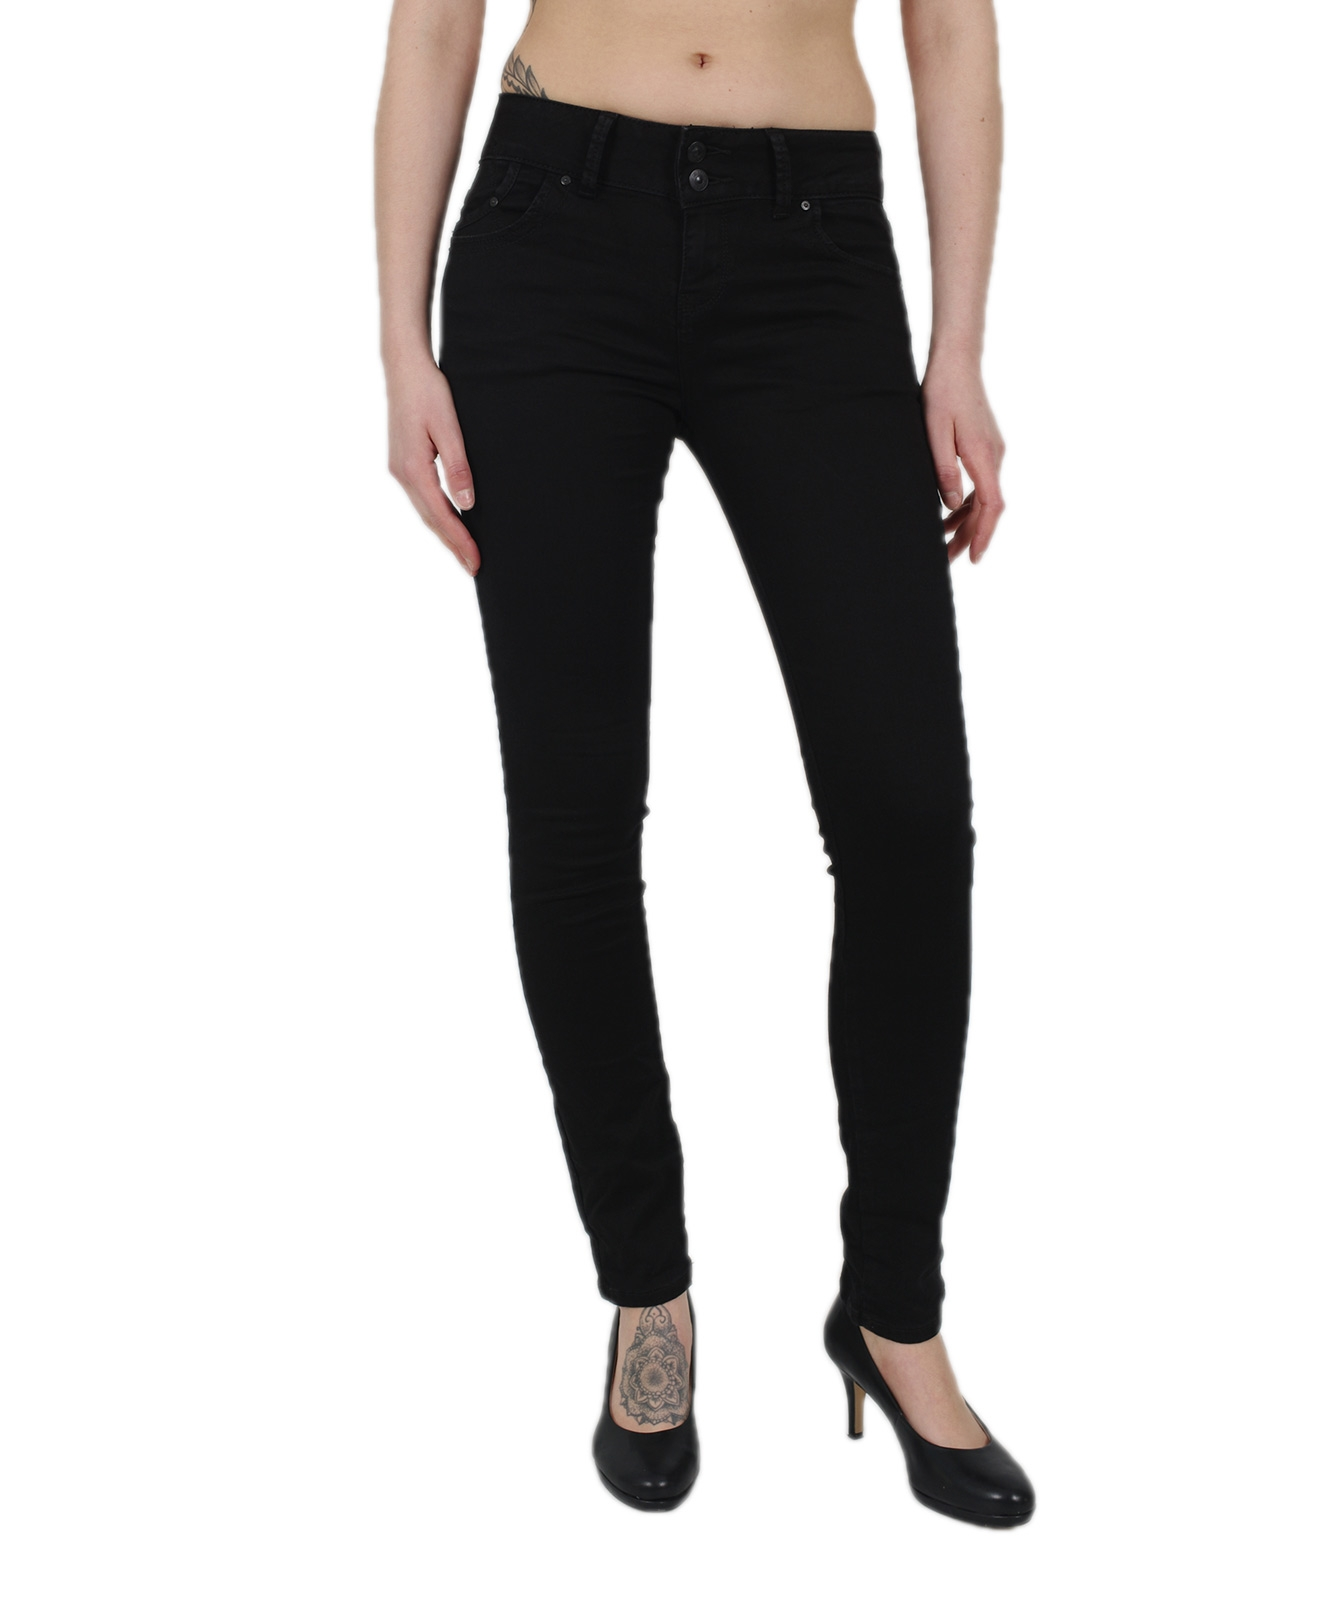 Hosen - LTB Jeans Röhre Molly M in Black To Black  - Onlineshop Jeans Meile